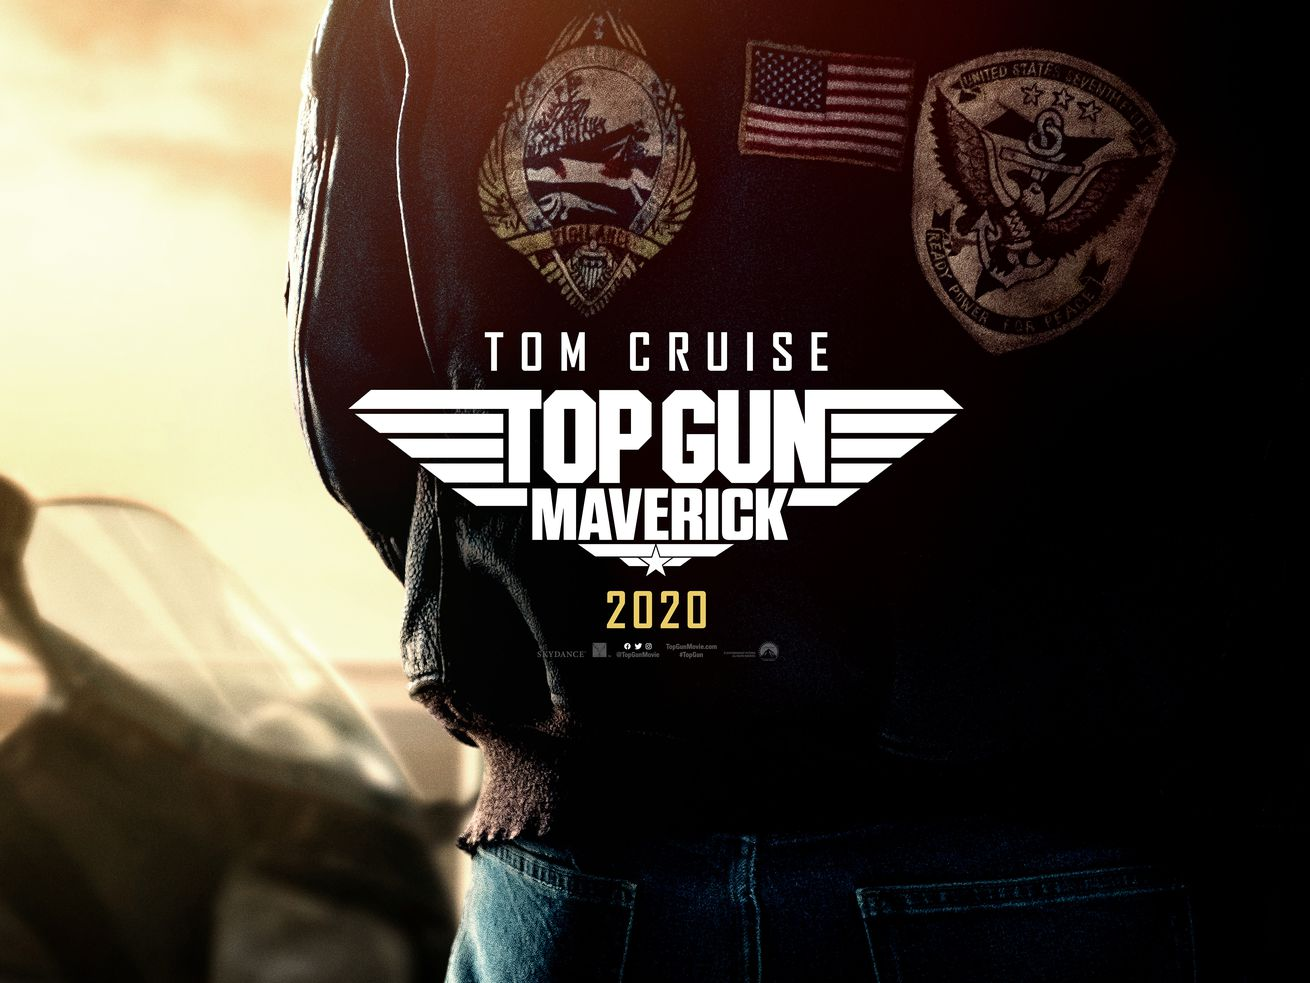 The poster for the movie Top Gun: Maverick.